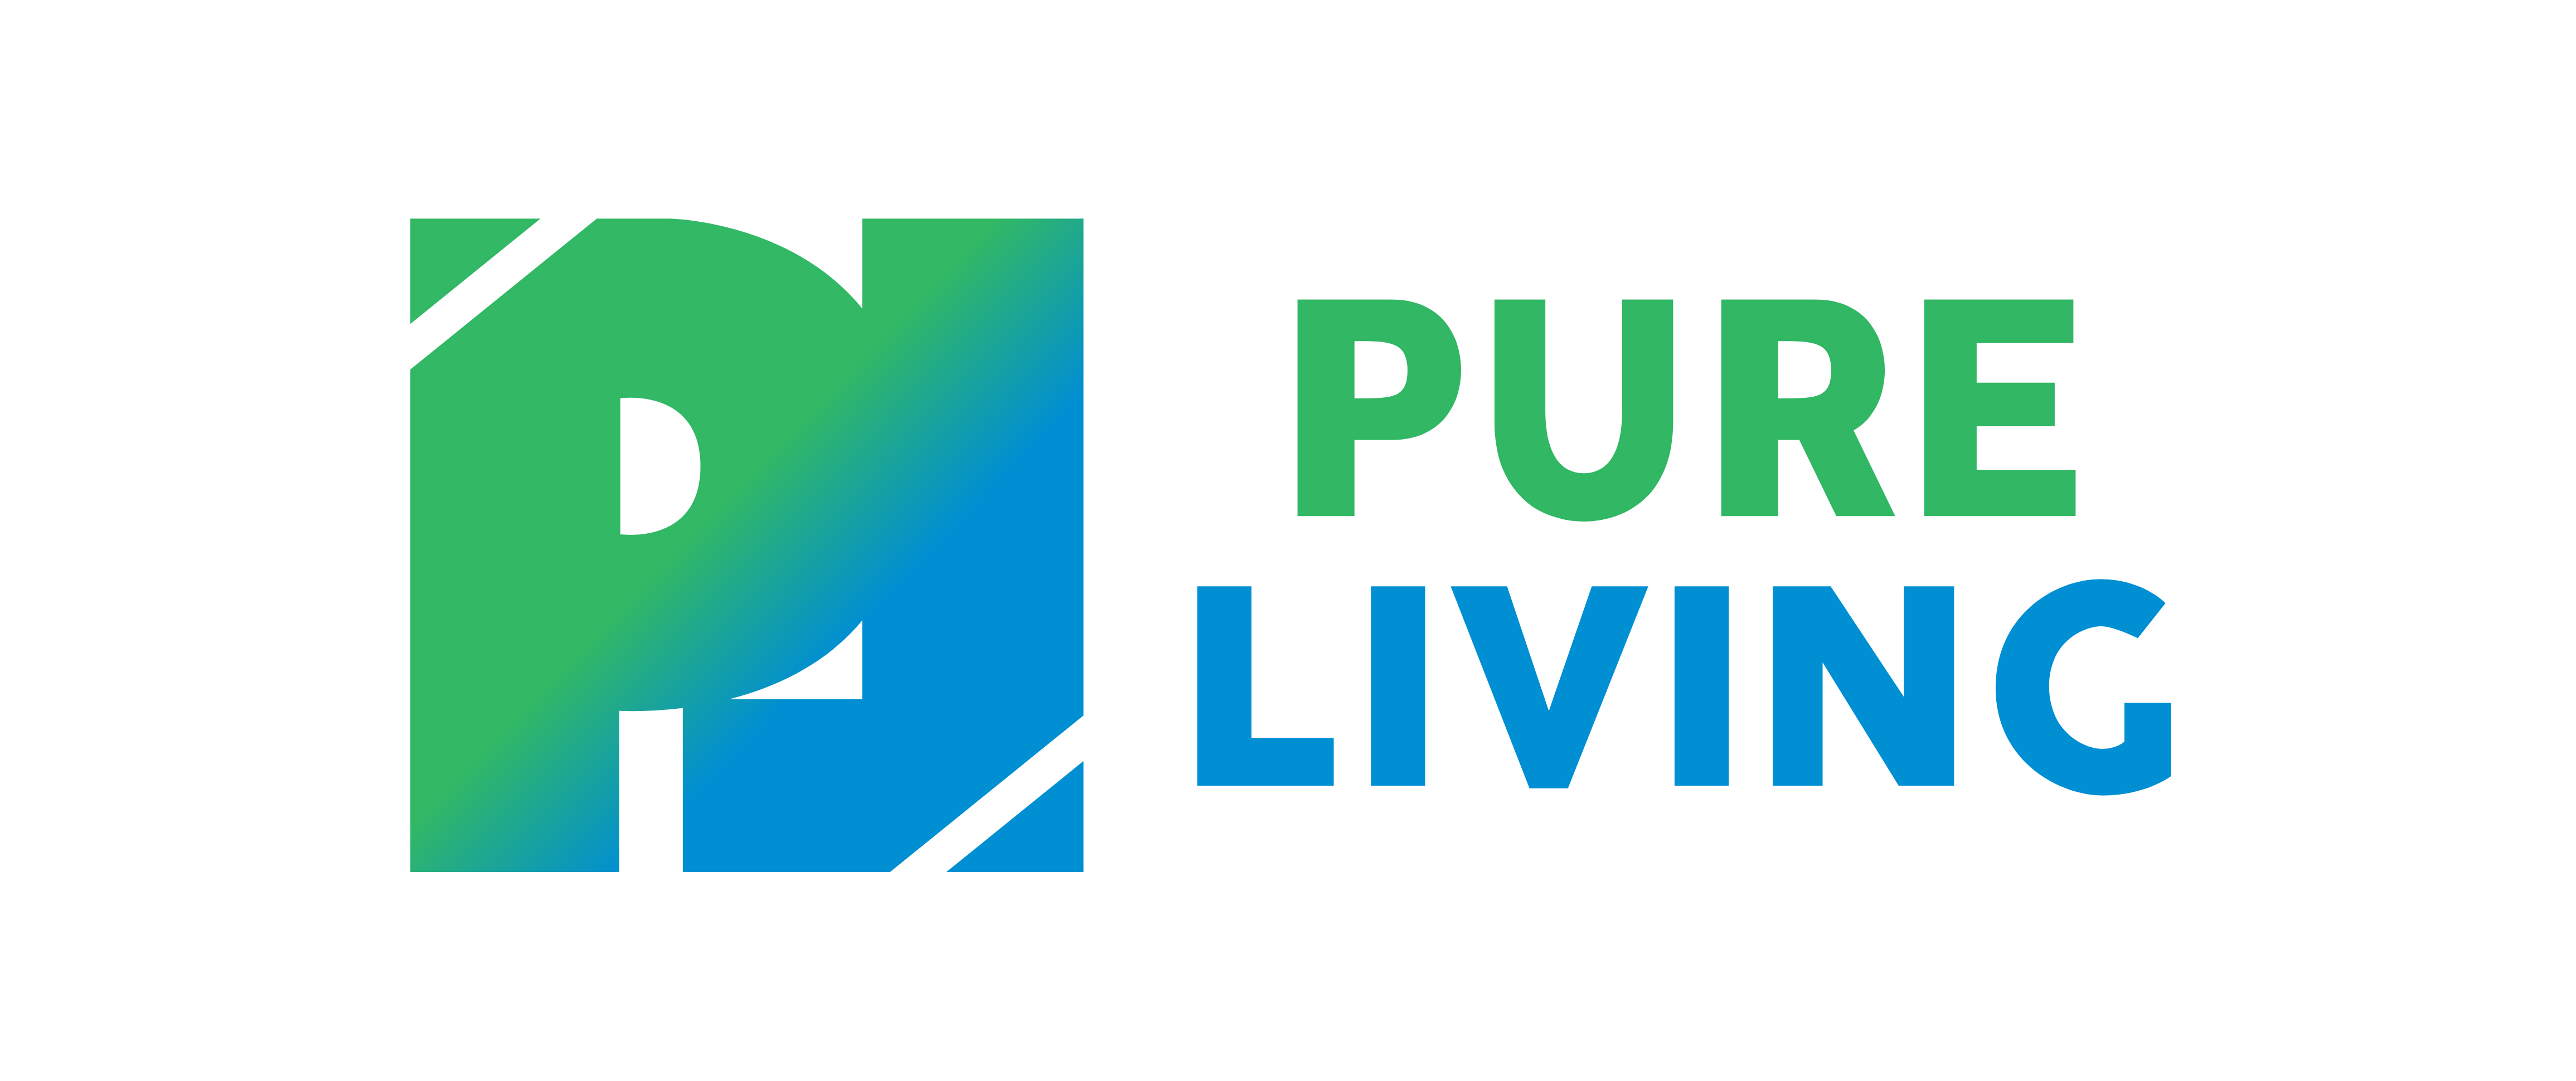 Pure Living launches the first Hong Kong-developed melt-blown fabric production machine to support the Hong Kong community